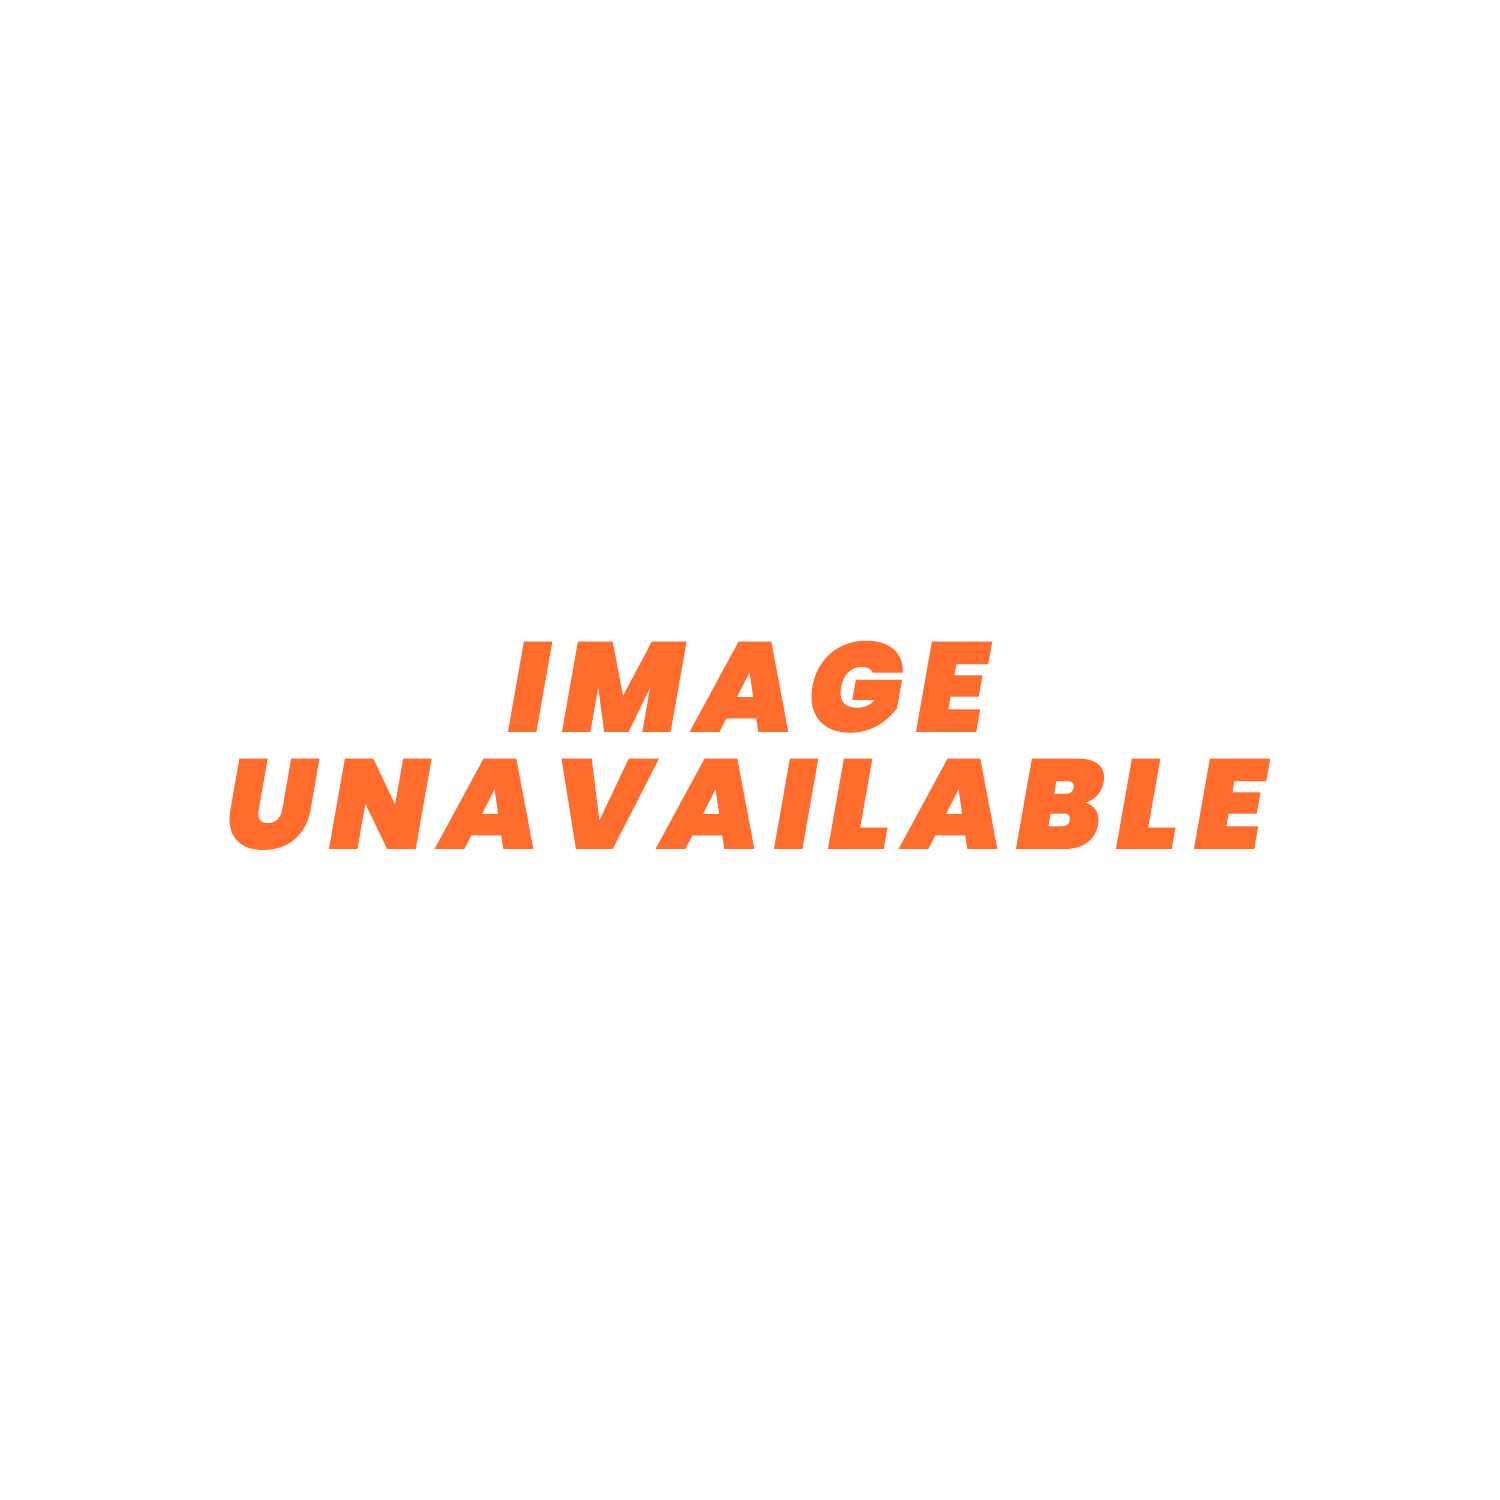 "SPAL Radiator Fan - 9.0"" (225mm) Push VA07-AP8/C-58S 590cfm"